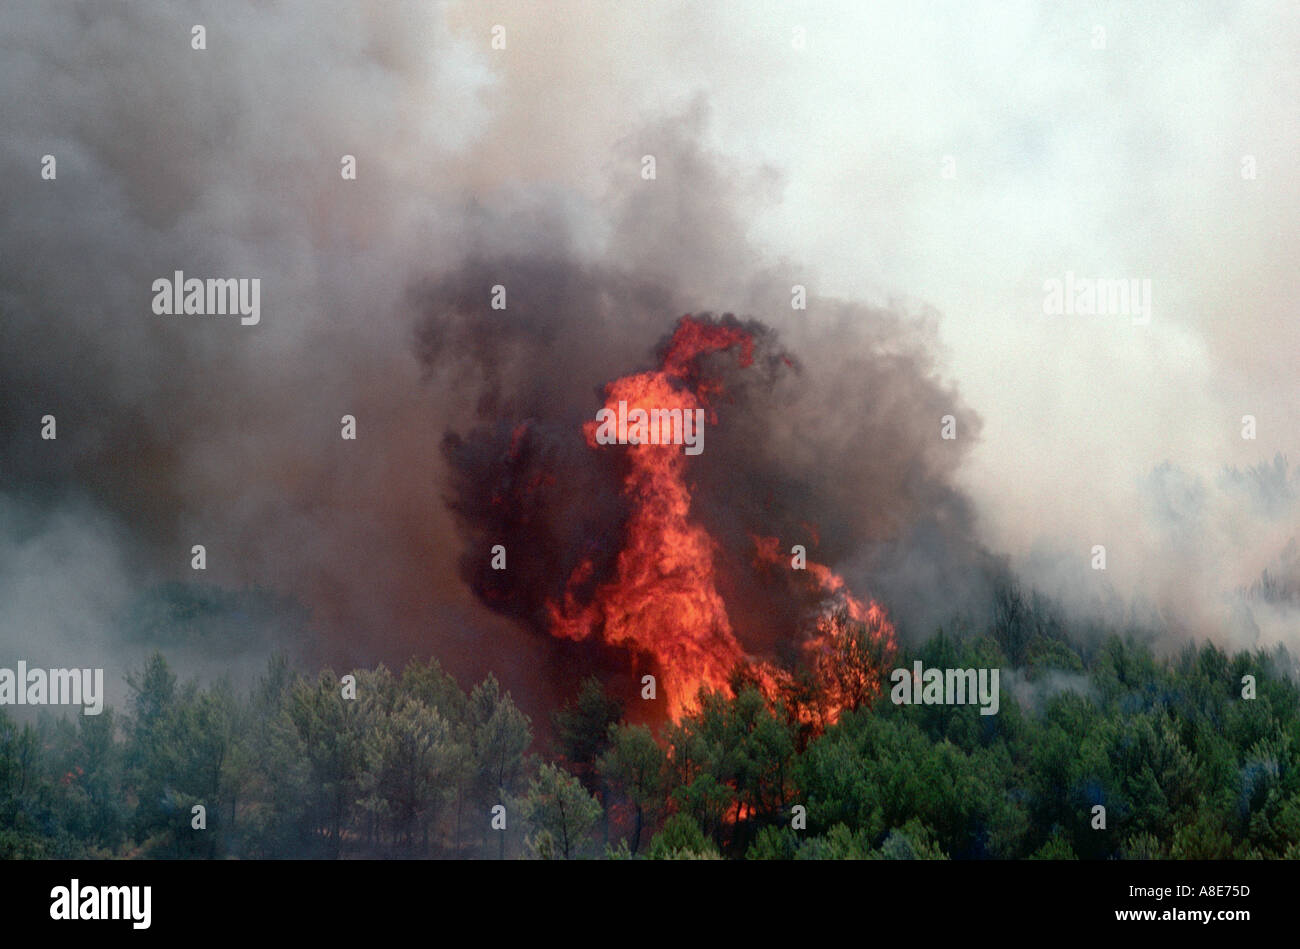 Aerial view of a wildfire and smoke near Marseille, Provence, France - Stock Image